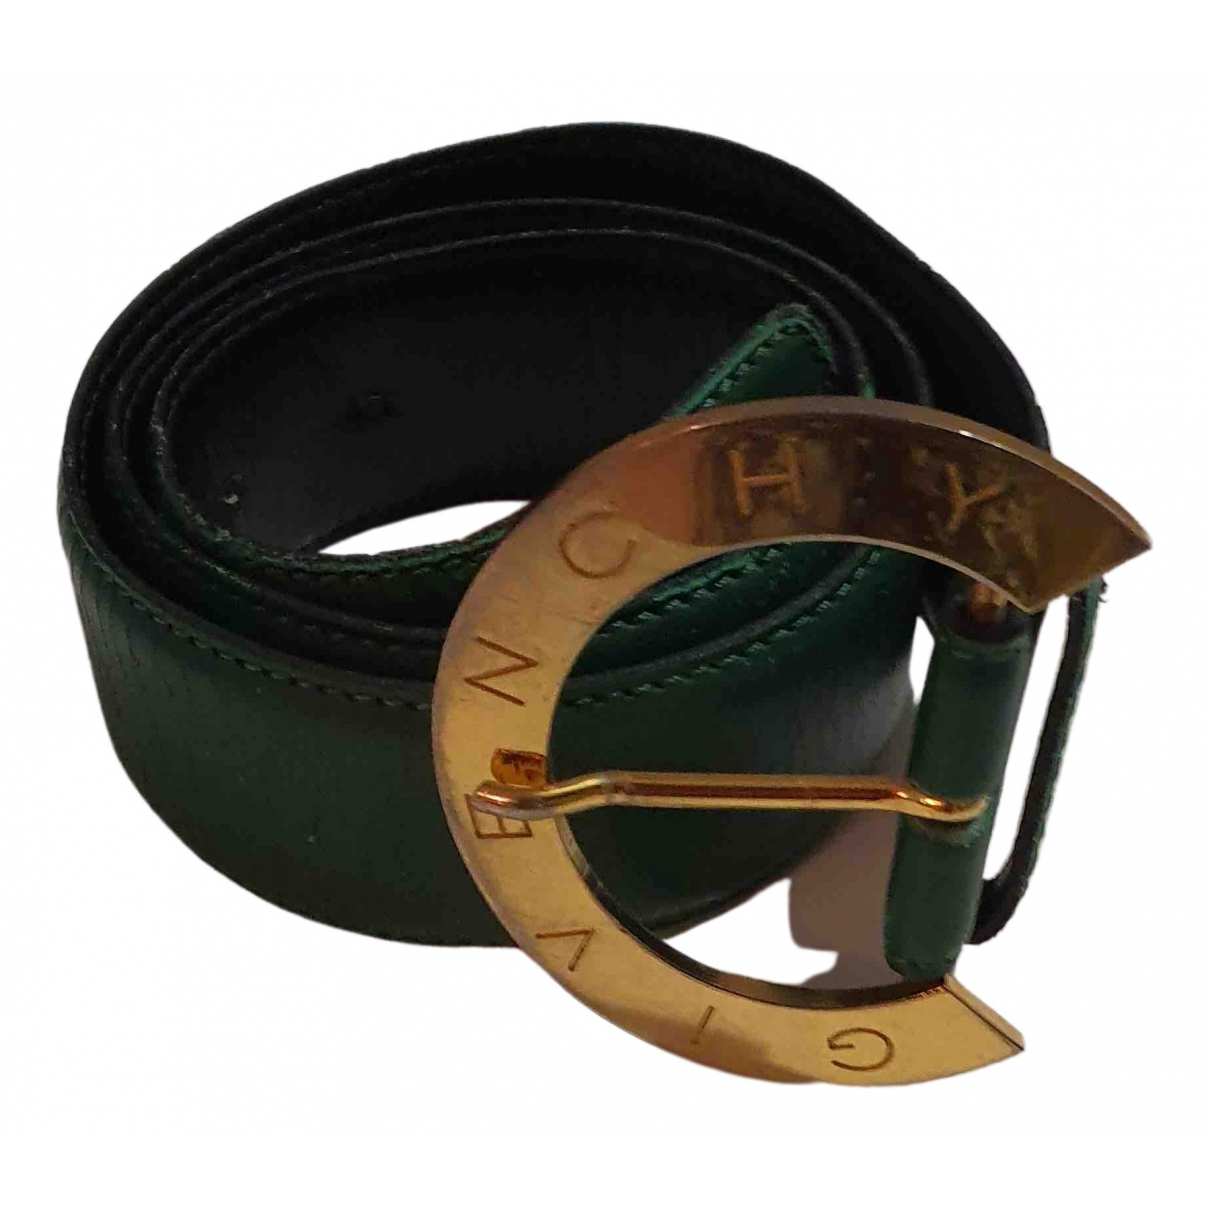 Givenchy \N Green Leather belt for Women S International